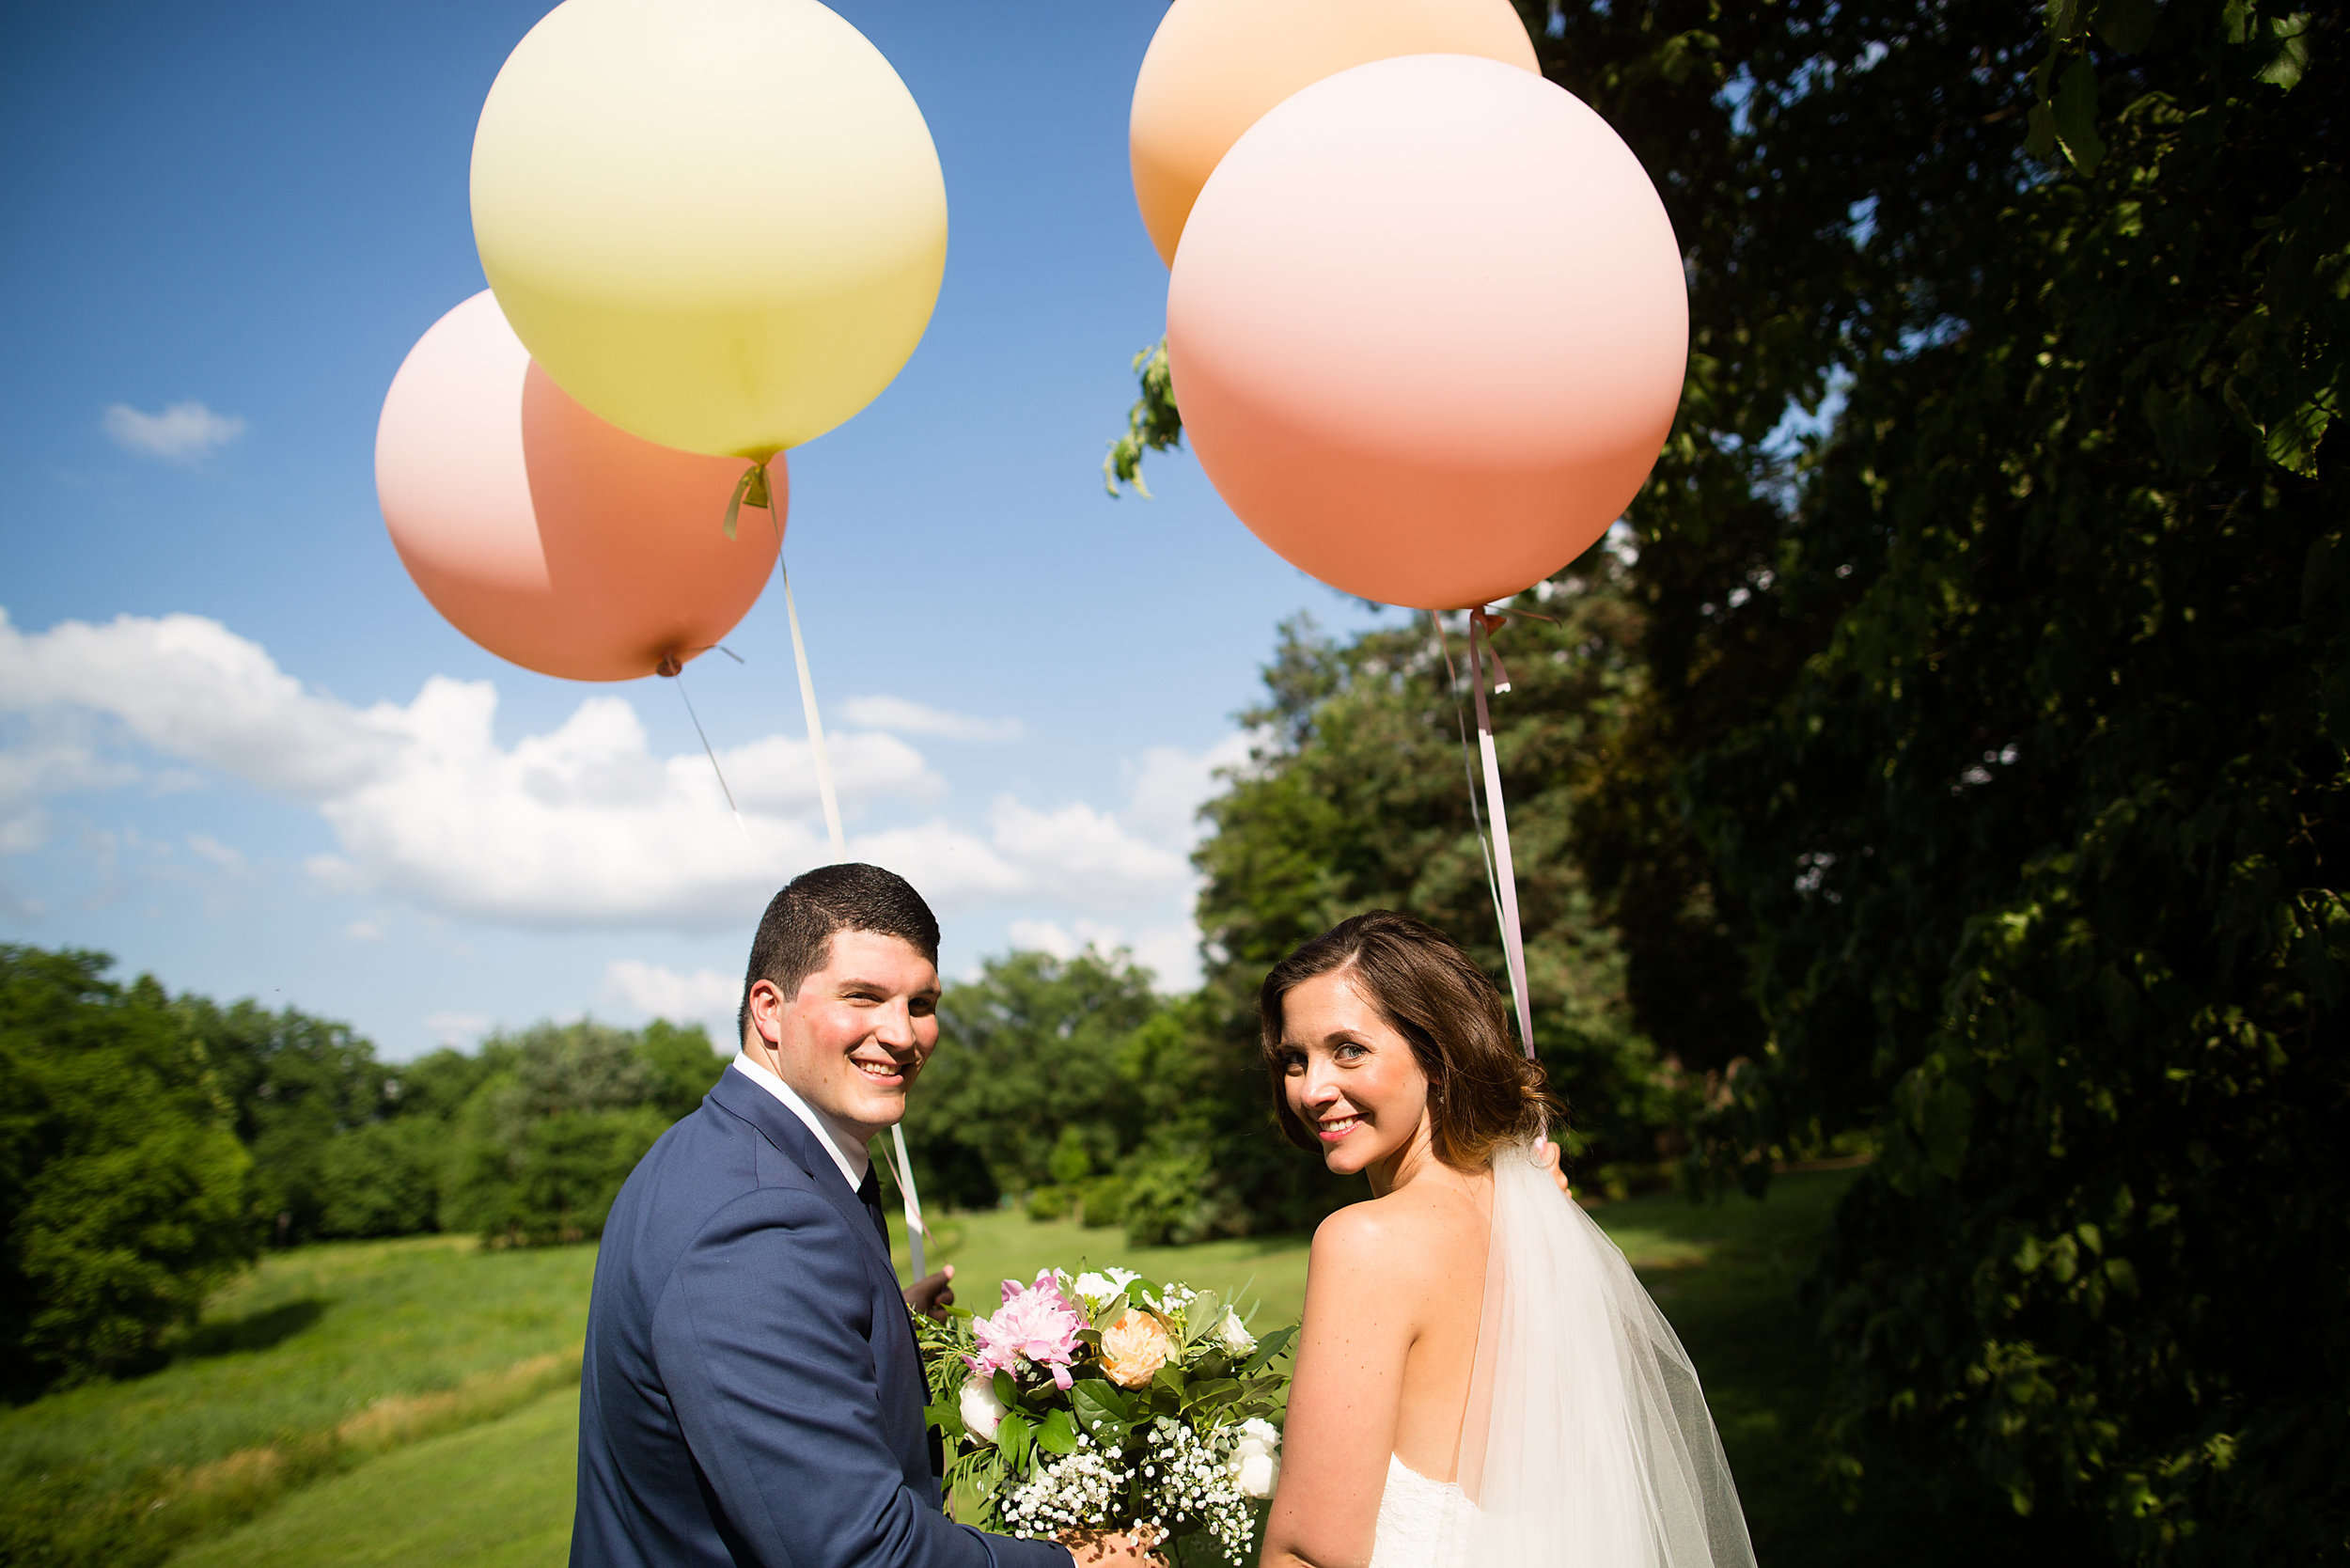 Photo By: The Happy Couple Photography